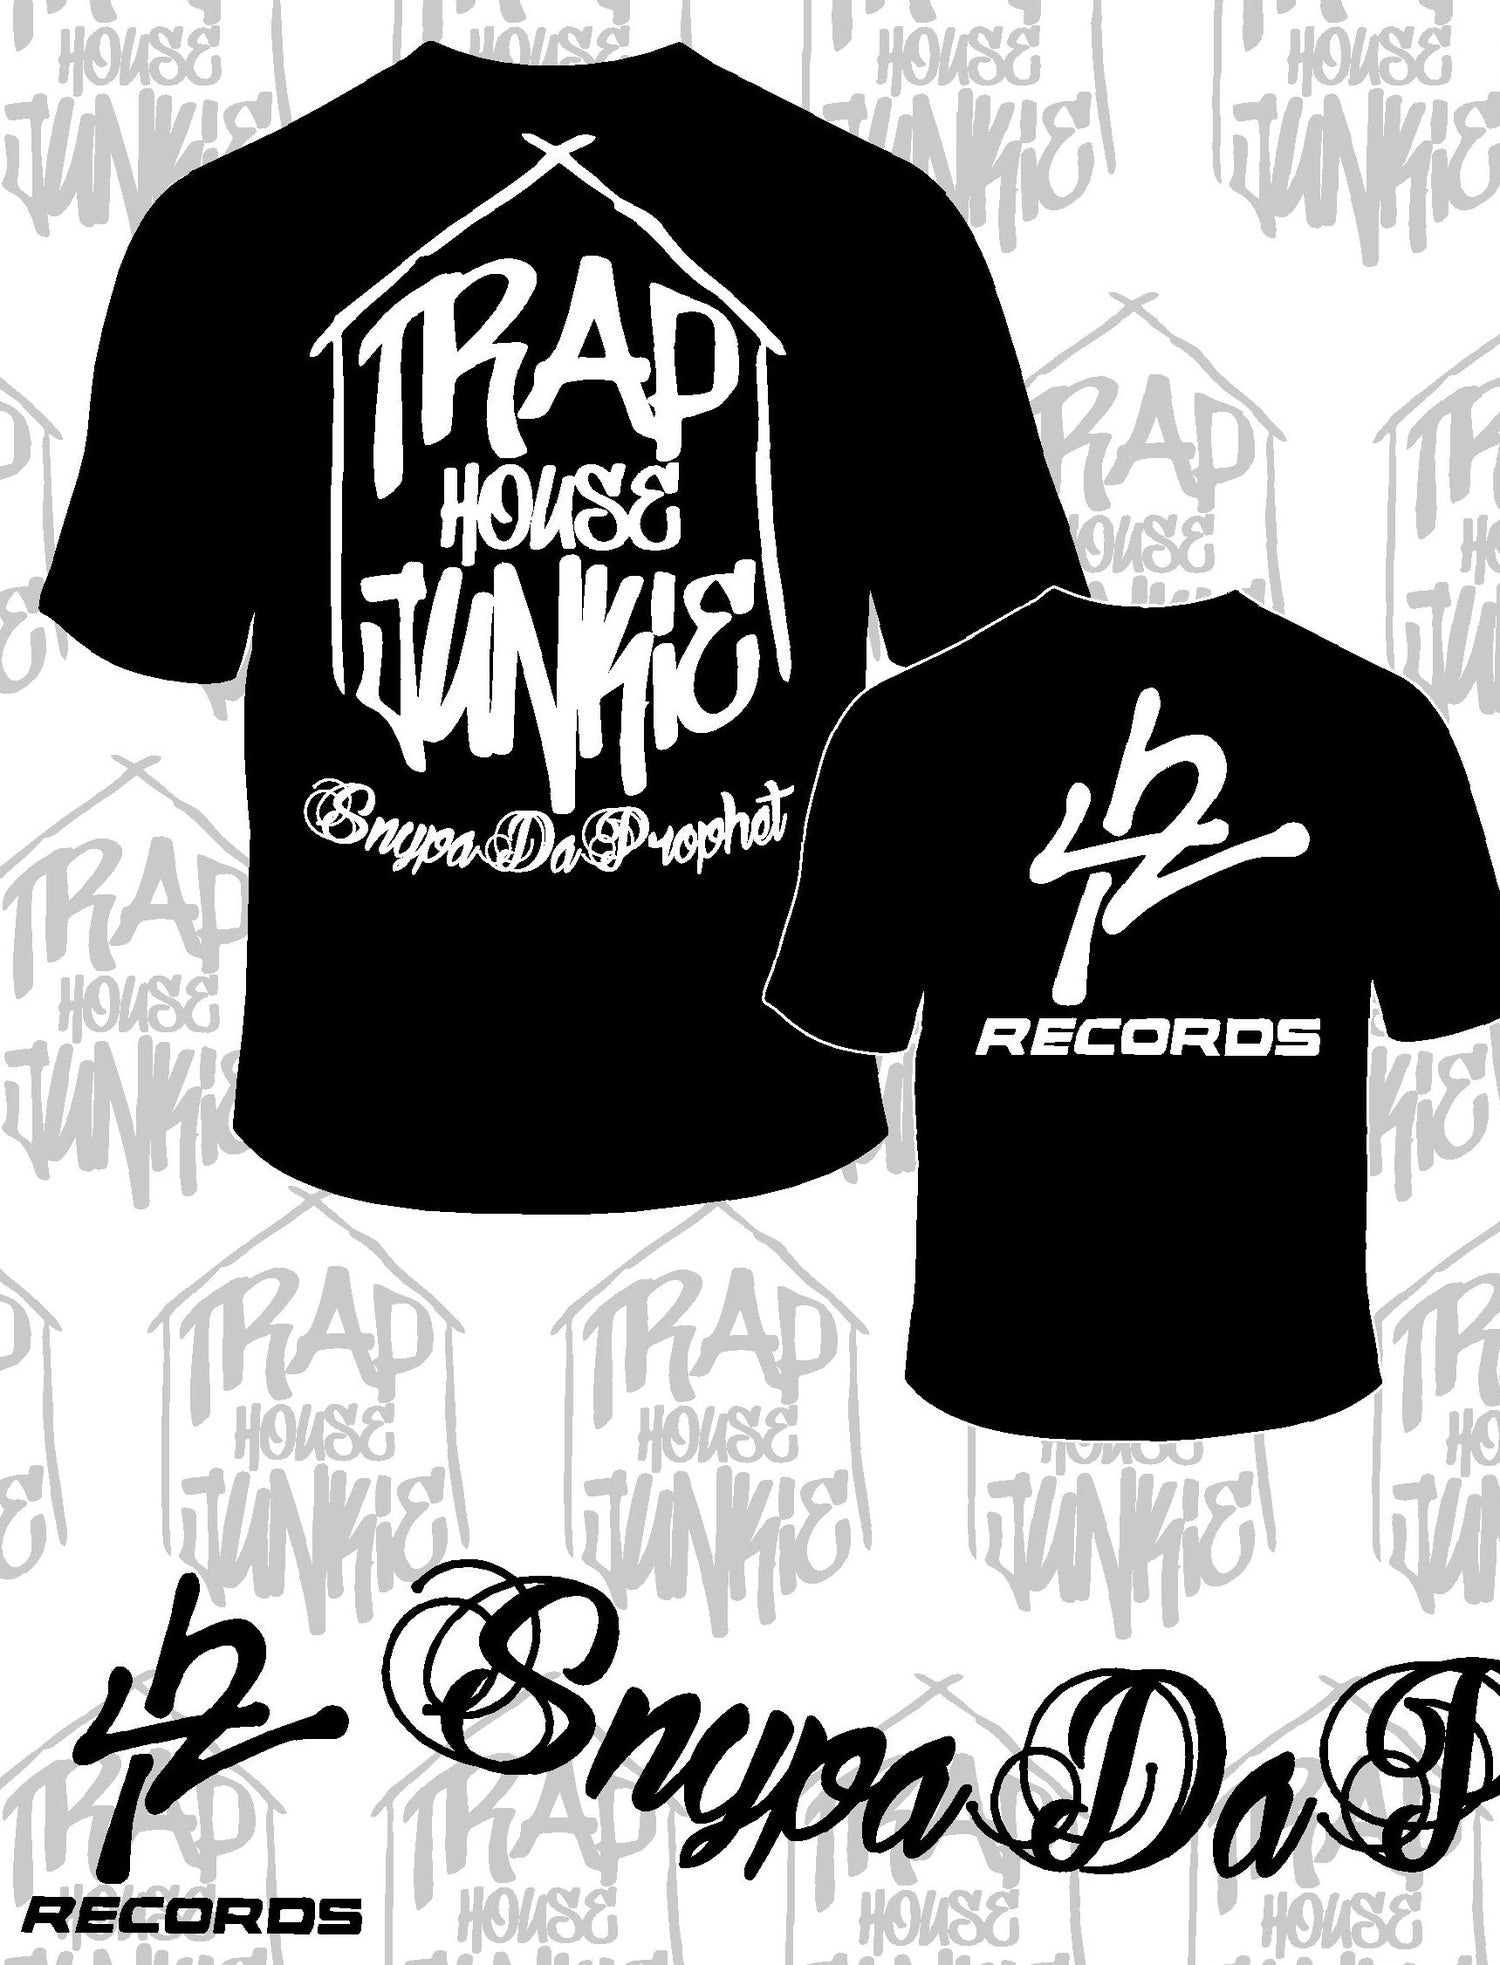 Image of Trap House Junkie / 42 Records T-Shirt